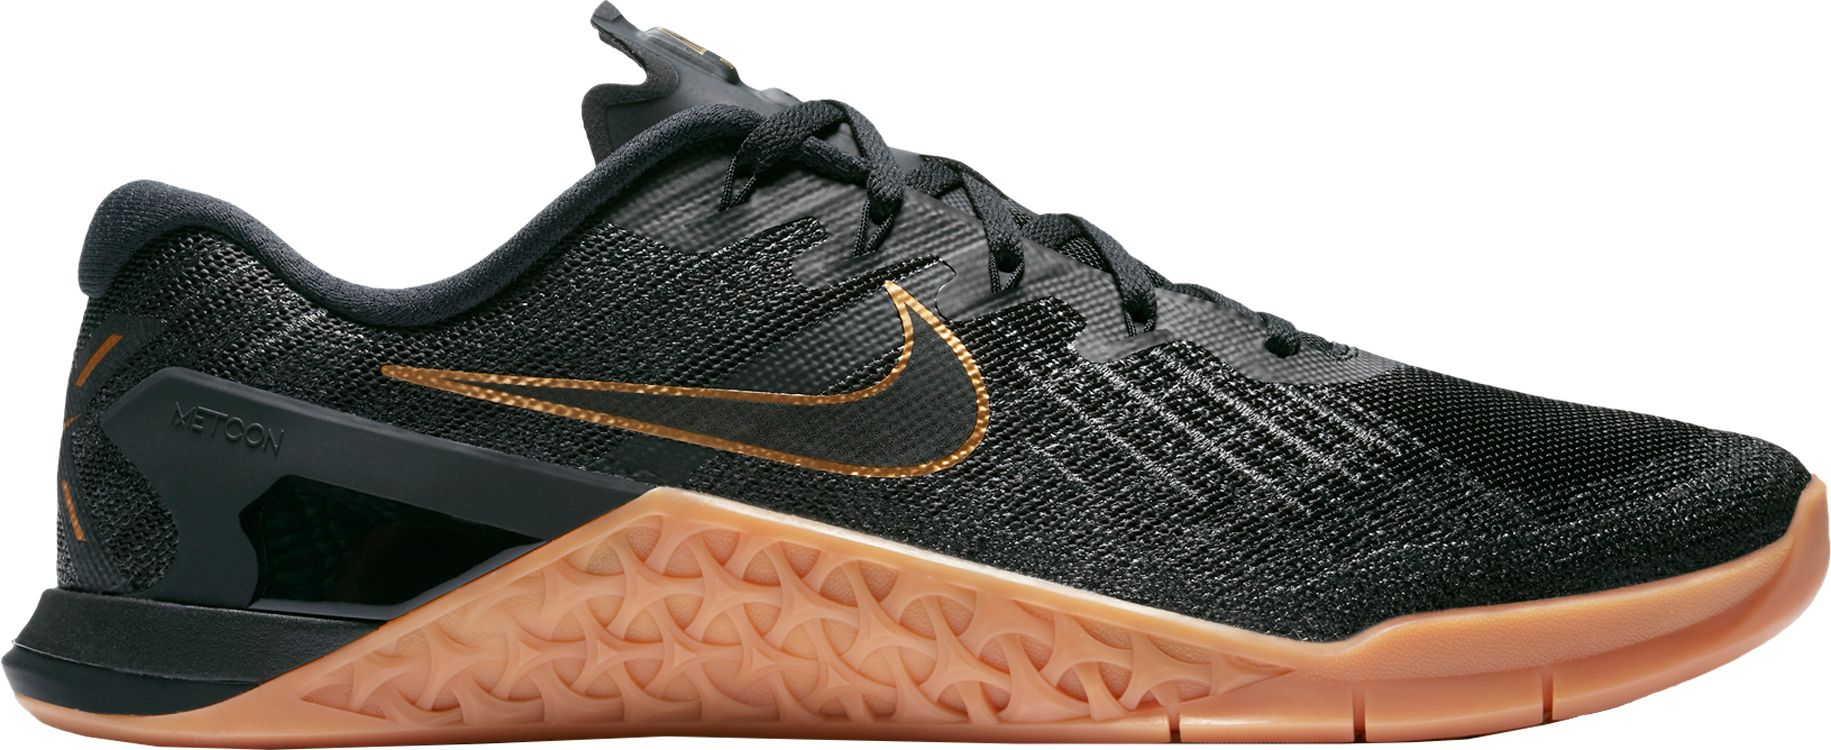 nike metcon 3 black and gold